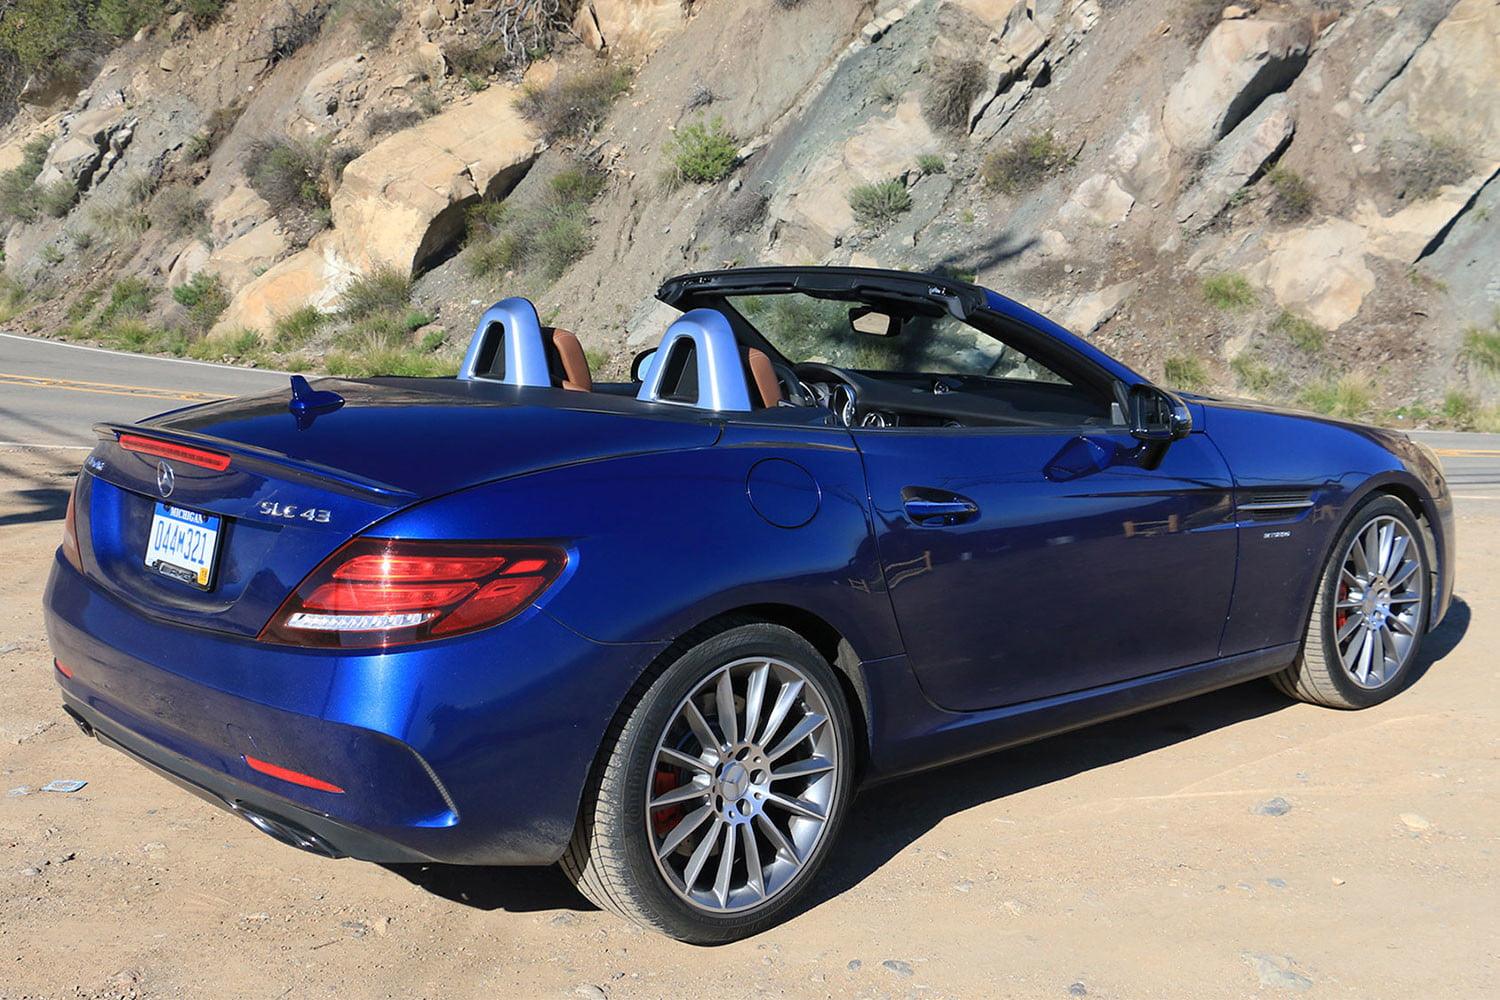 2017 mercedes amg slc43 first drive review digital trends for 2017 mercedes benz gls450 curb weight